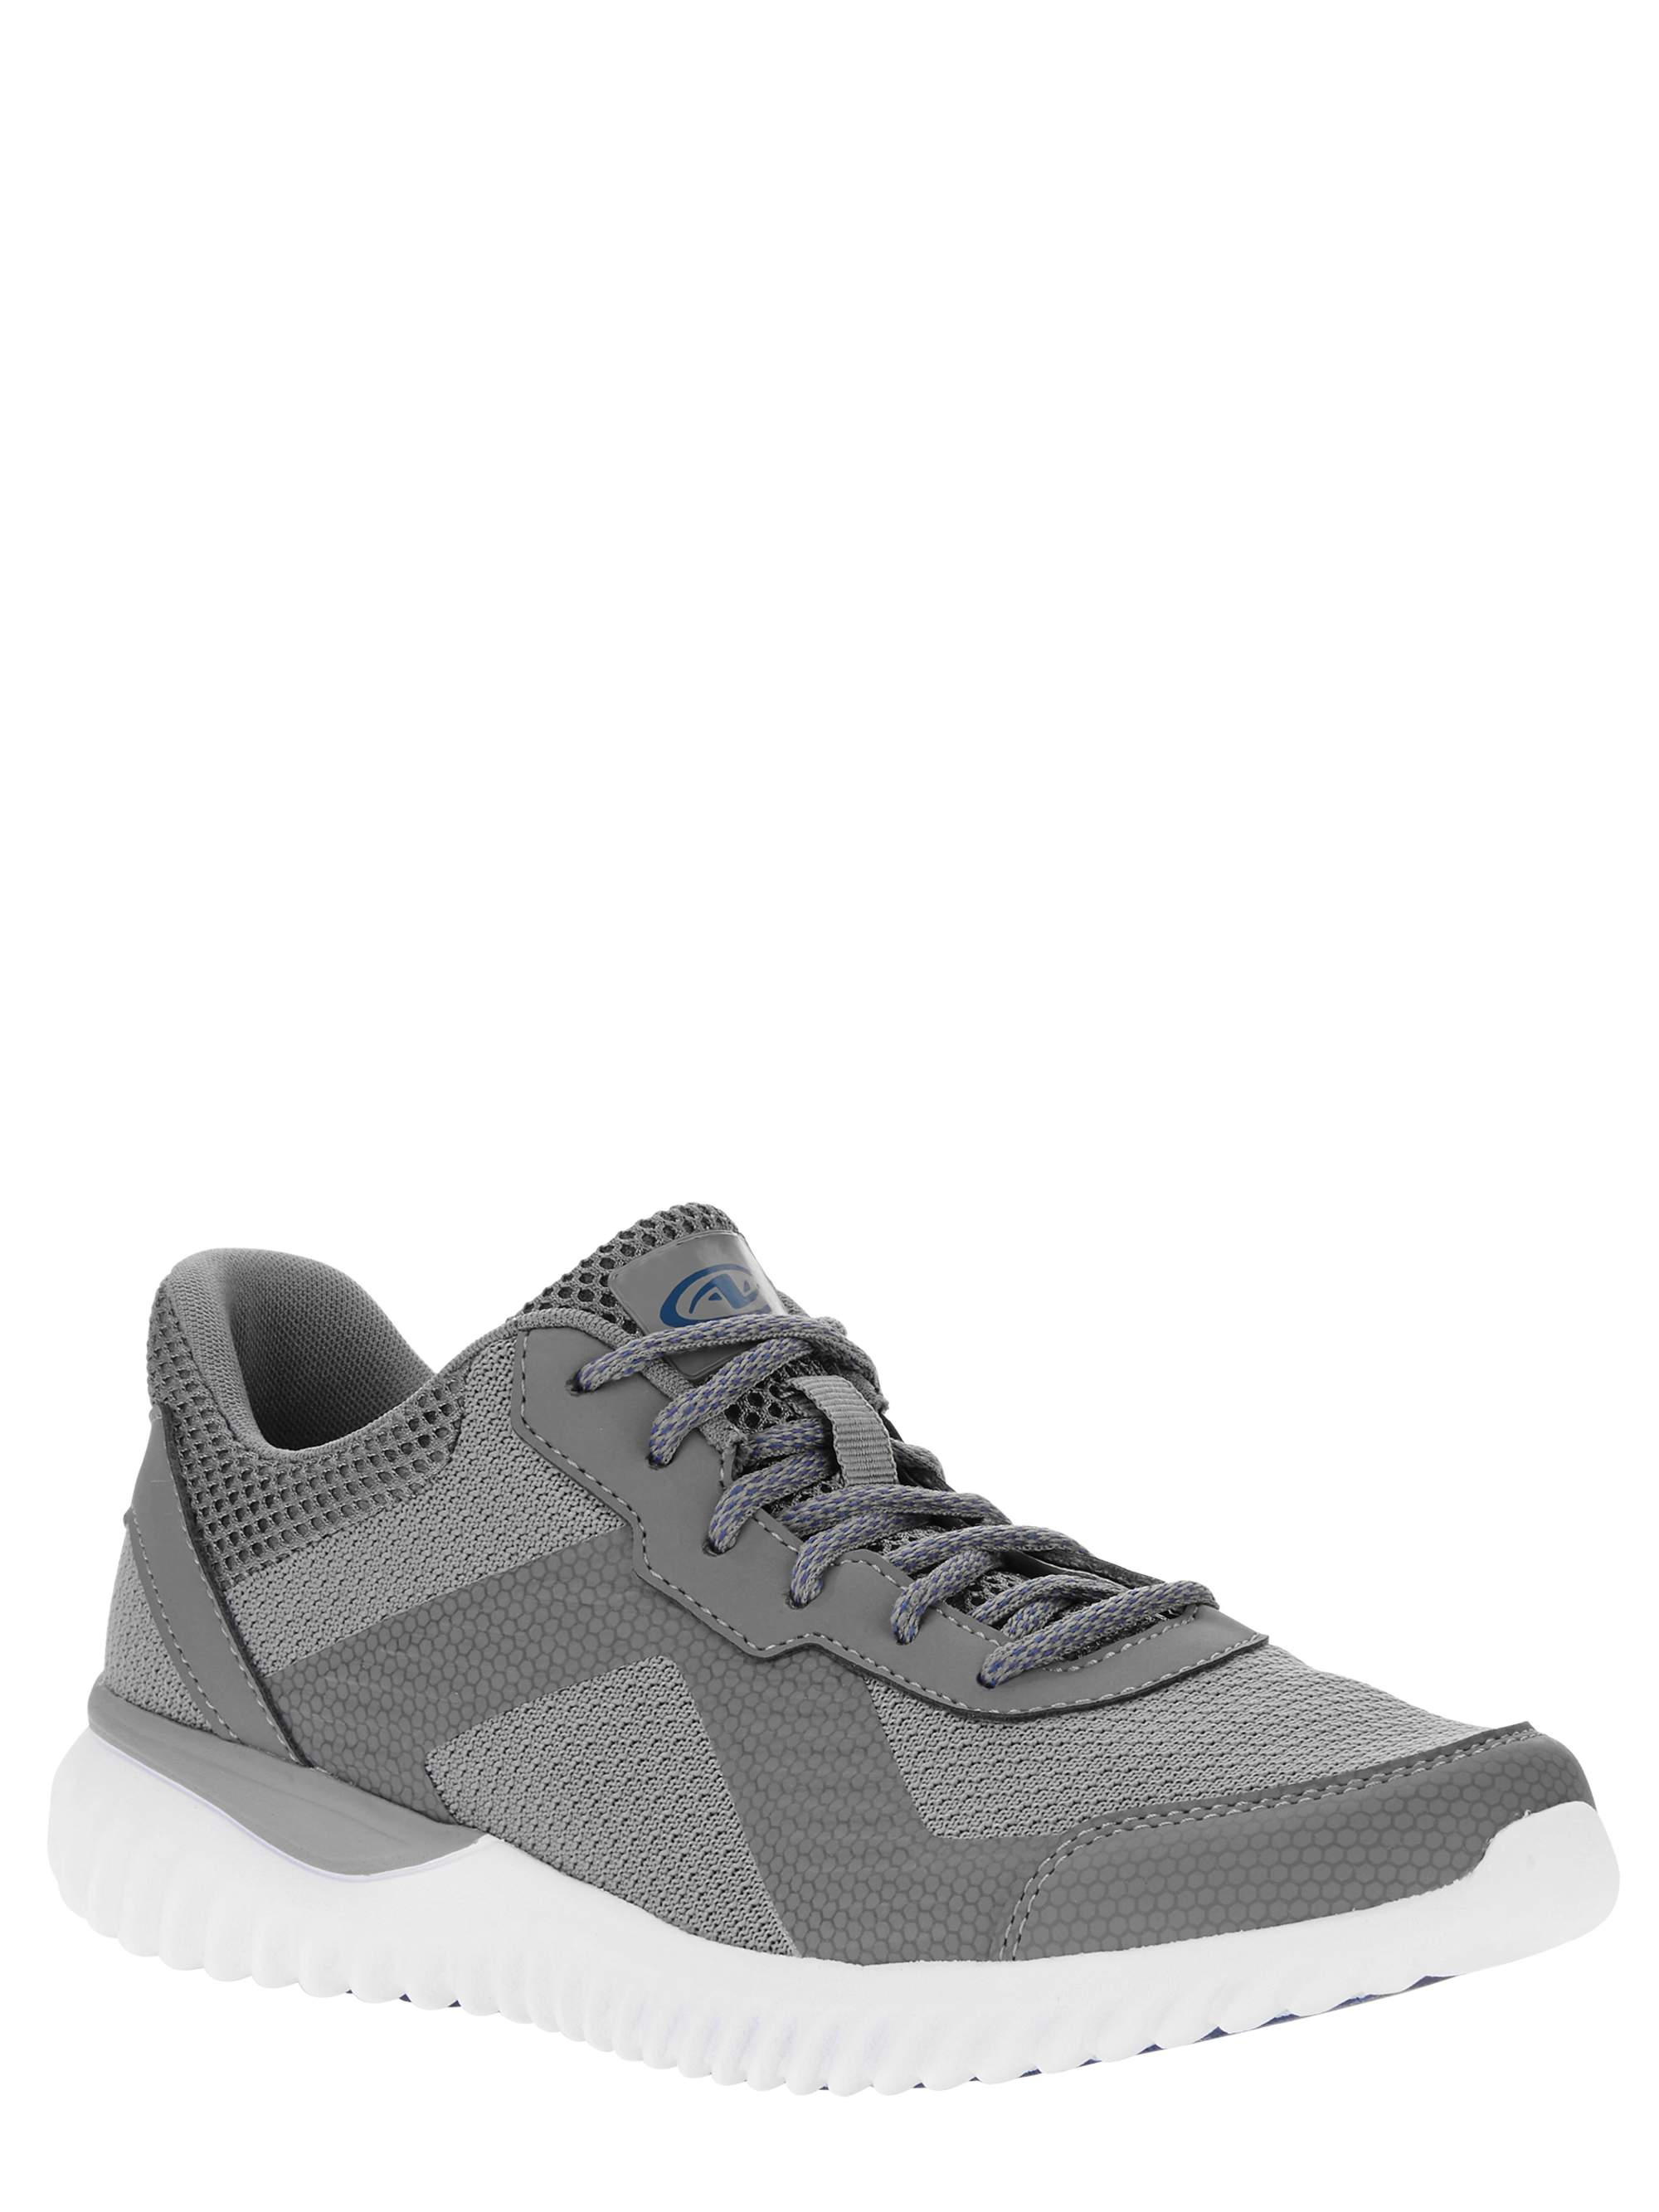 Athletic Works Men's Running Shoes